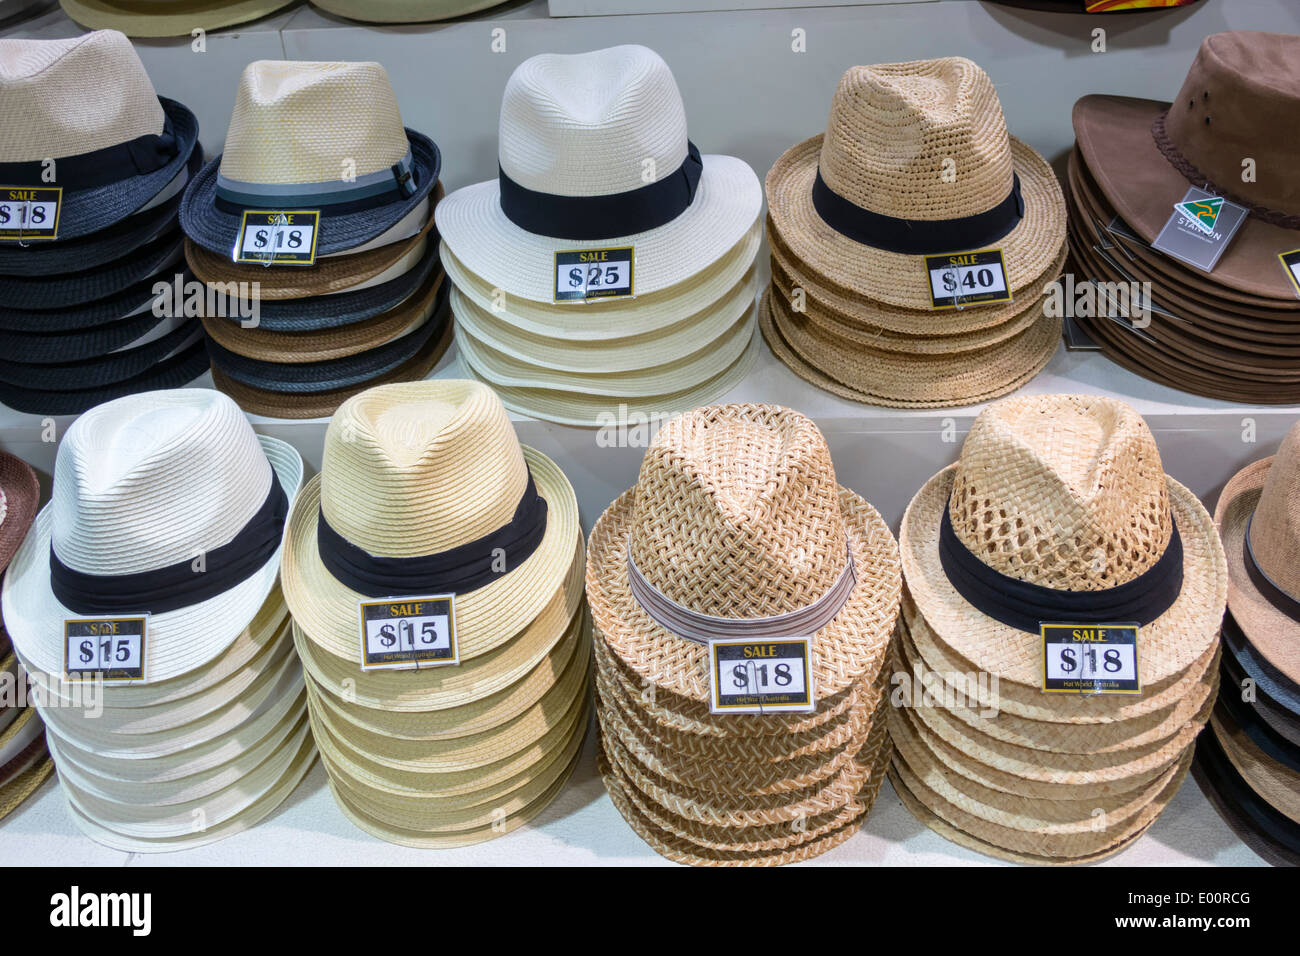 Sydney Australia NSW New South Wales Haymarket Paddy's Markets shopping hats fedoras sale display prices fashion - Stock Image